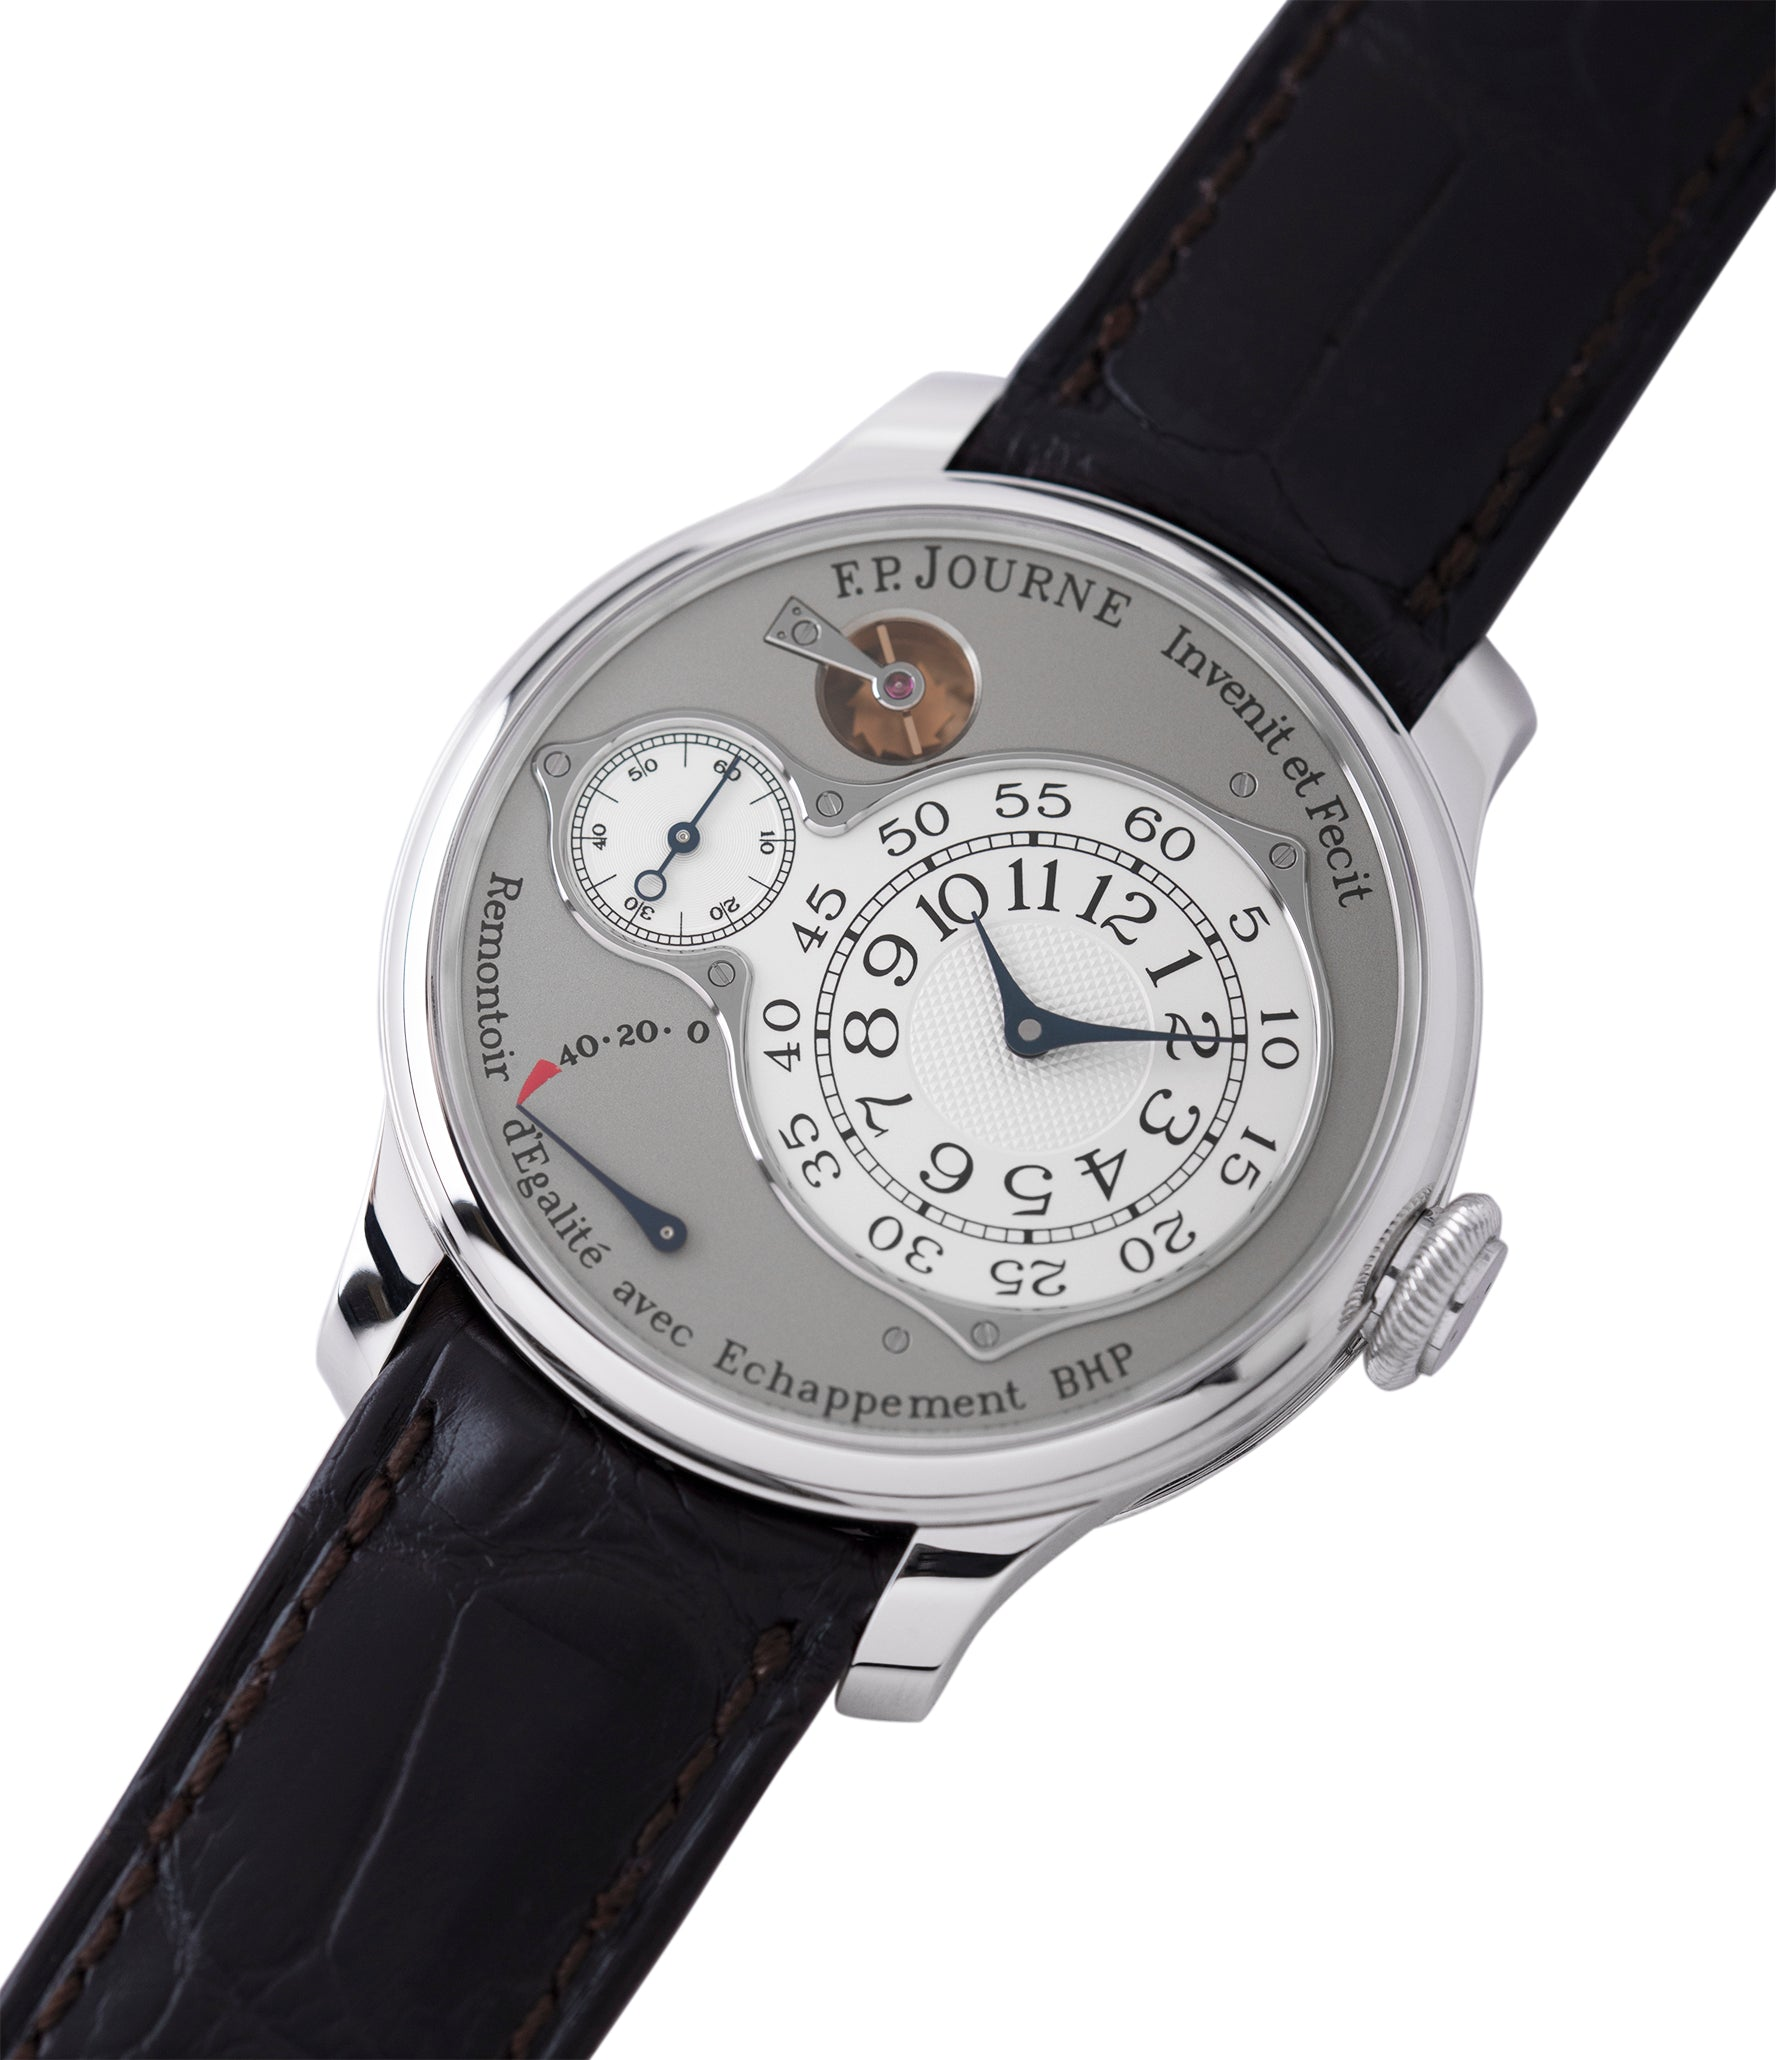 sell F. P. Journe Chronometre Optimum platinum rare watch for sale online at A Collected Man London approved retailer of independent watchmakers